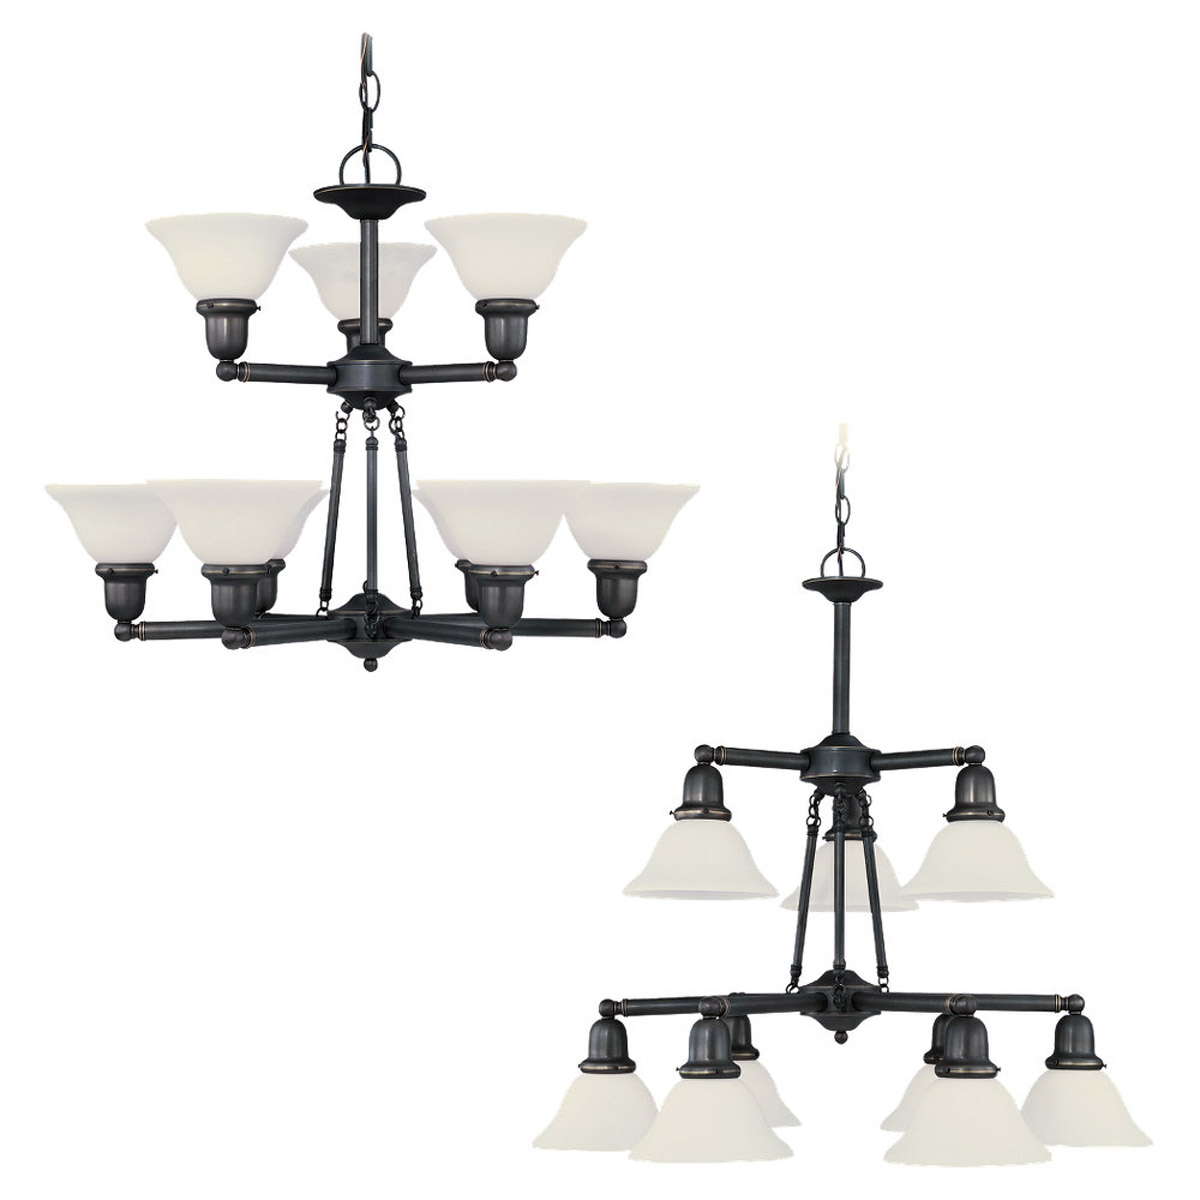 Sea Gull 31062-782 Sussex 9 Light 30 inch Heirloom Bronze Chandelier Ceiling Light in Satin Etched Glass photo